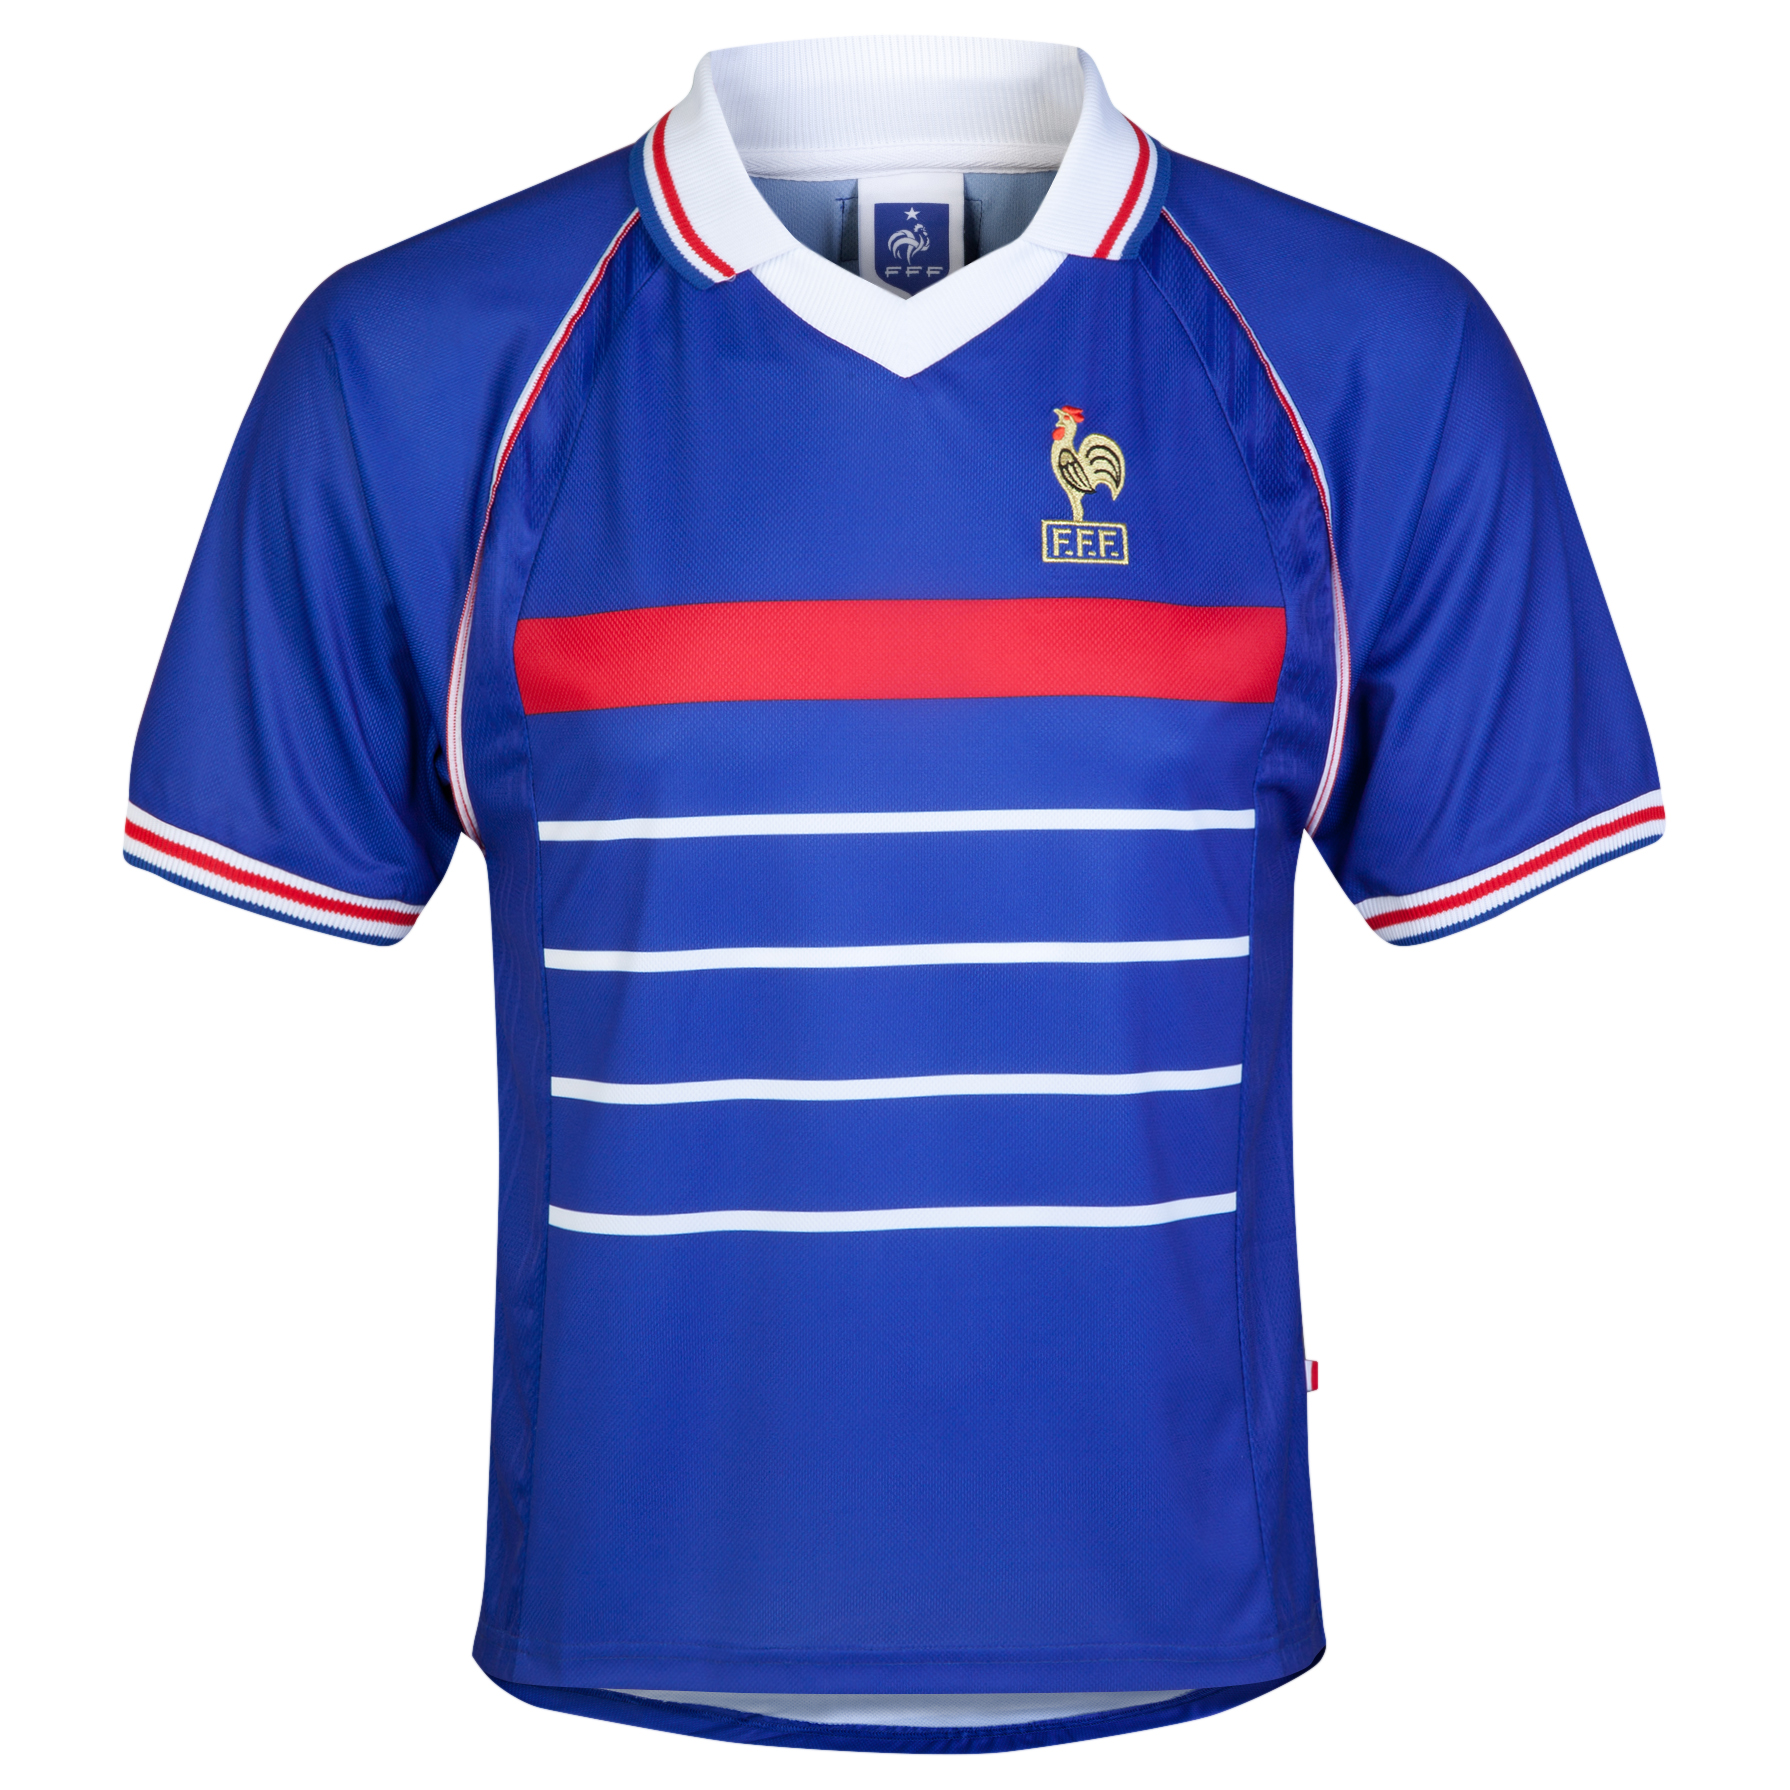 Image of France 1998 World Cup Finals Shirt